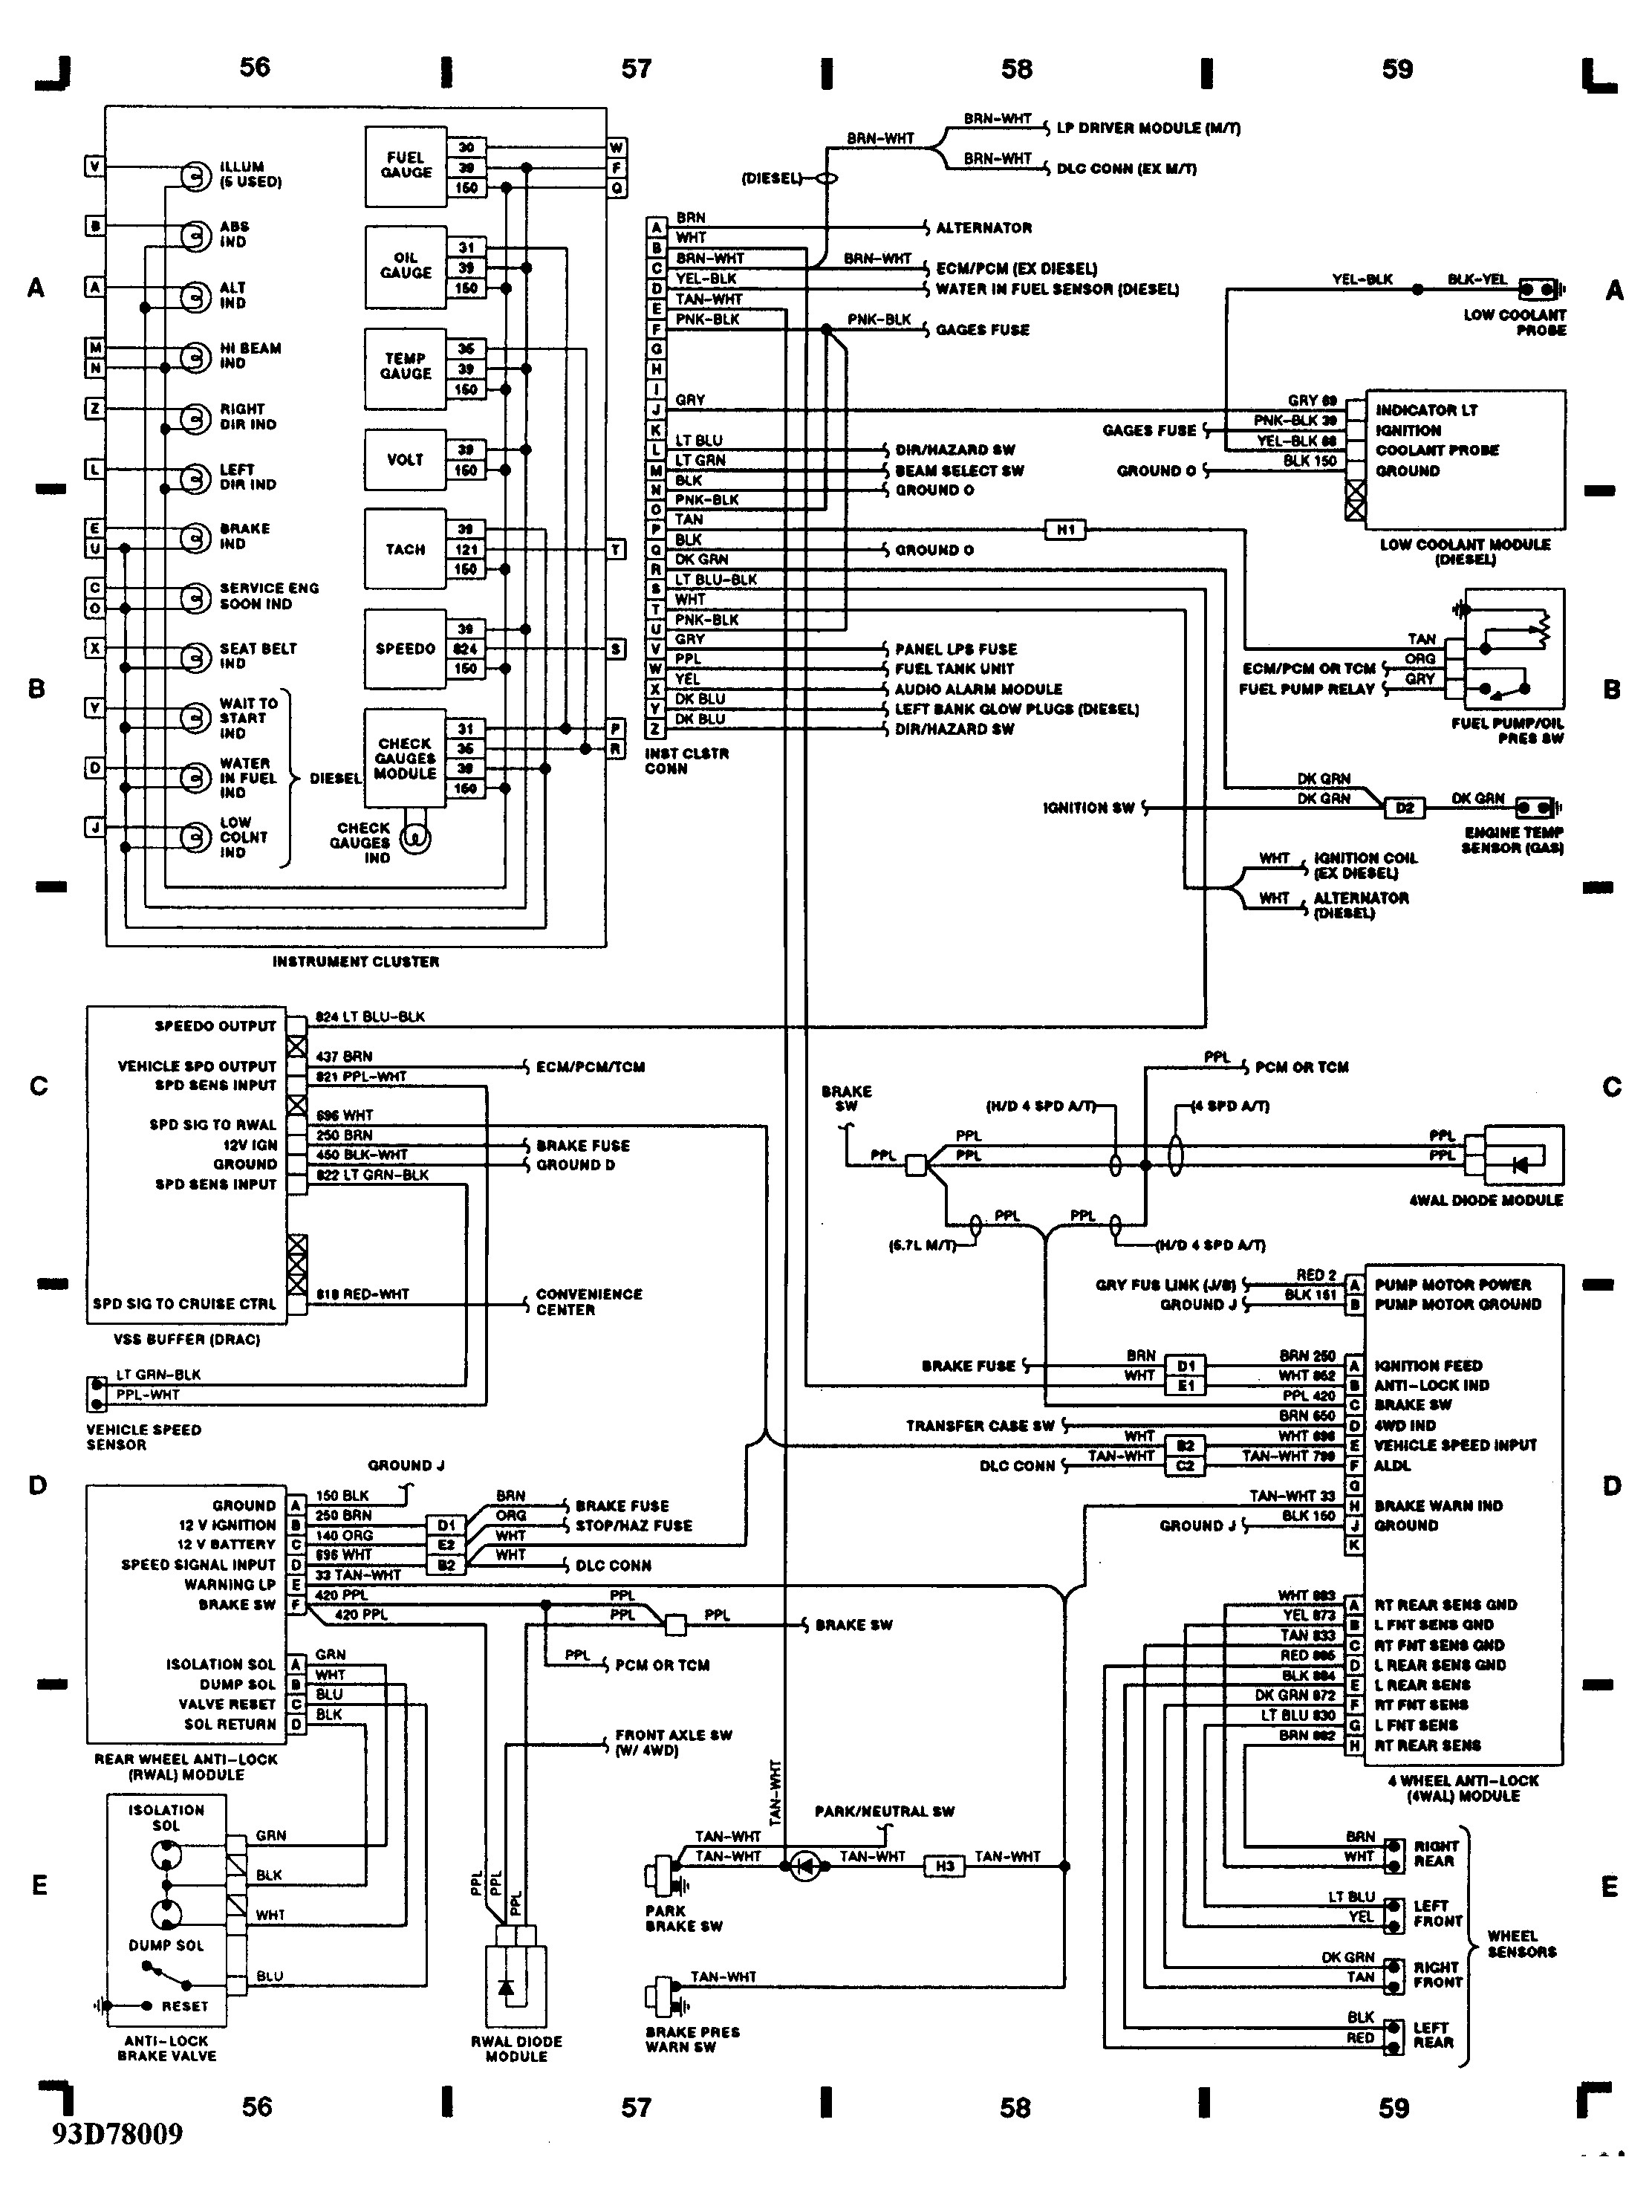 5.7 vortec wiring harness diagram Download-5 7 vortec wiring harness diagram Collection 5 7 Vortec Wiring Harness Diagram Unique I Have 15-p